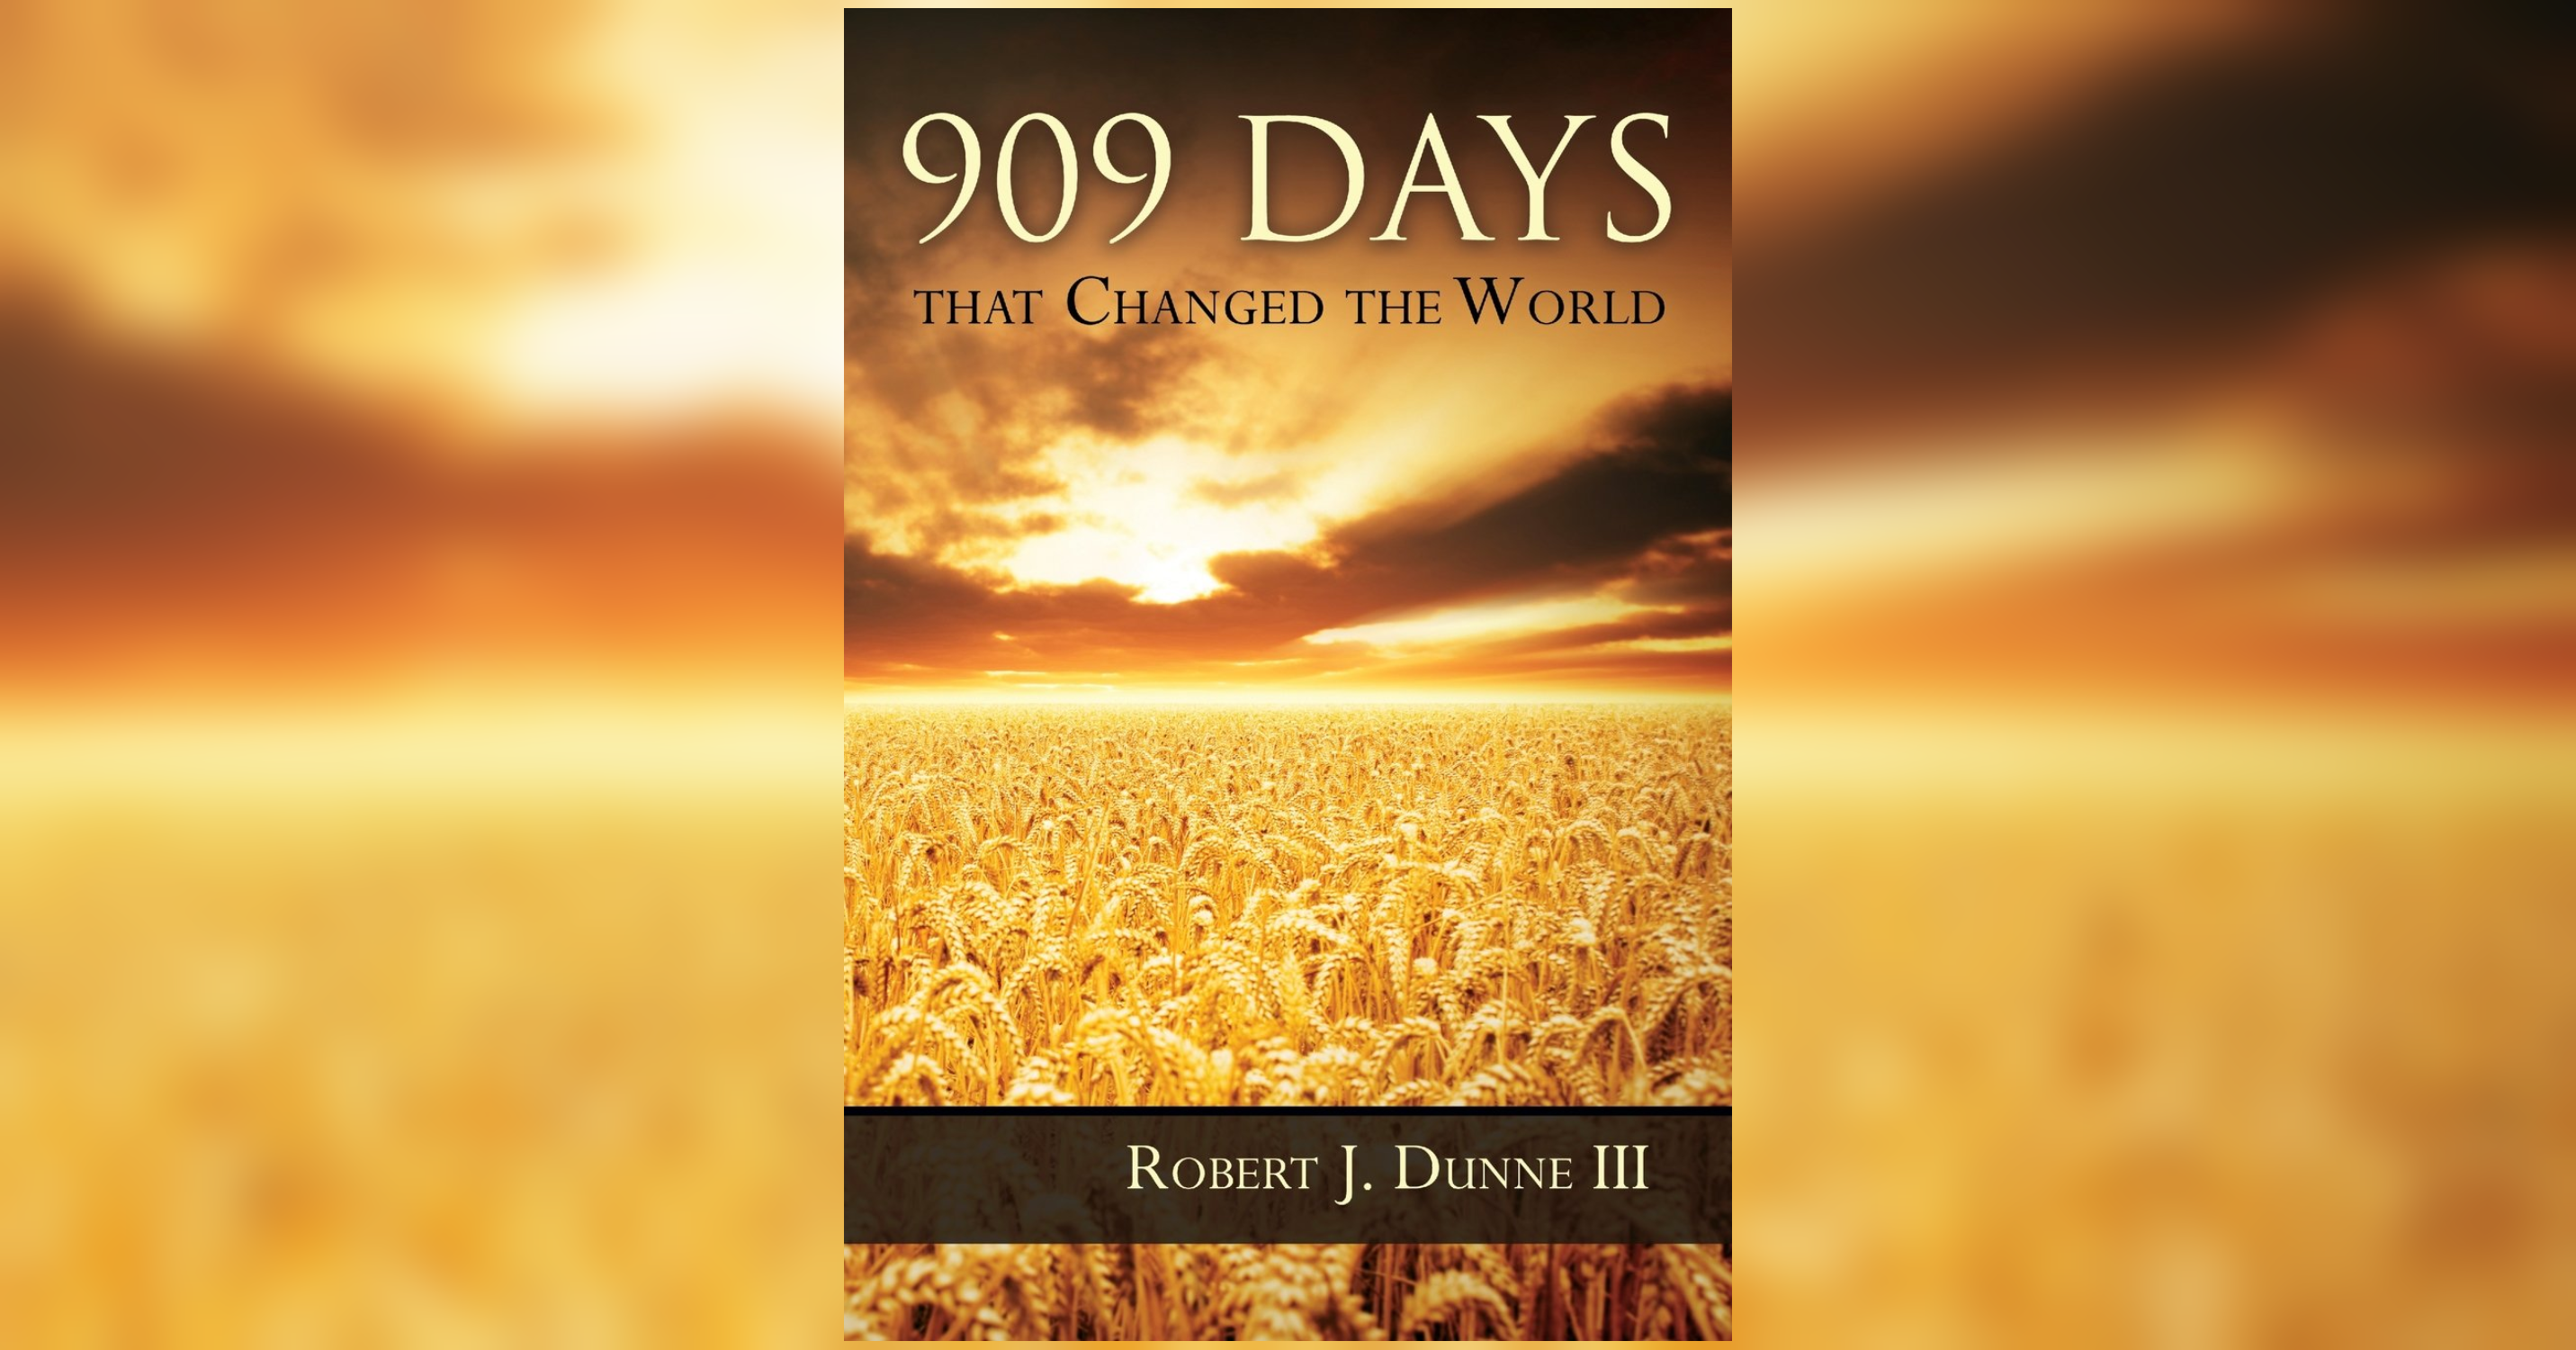 909 Days That Changed the World: Jesus Returns Home to Nazareth